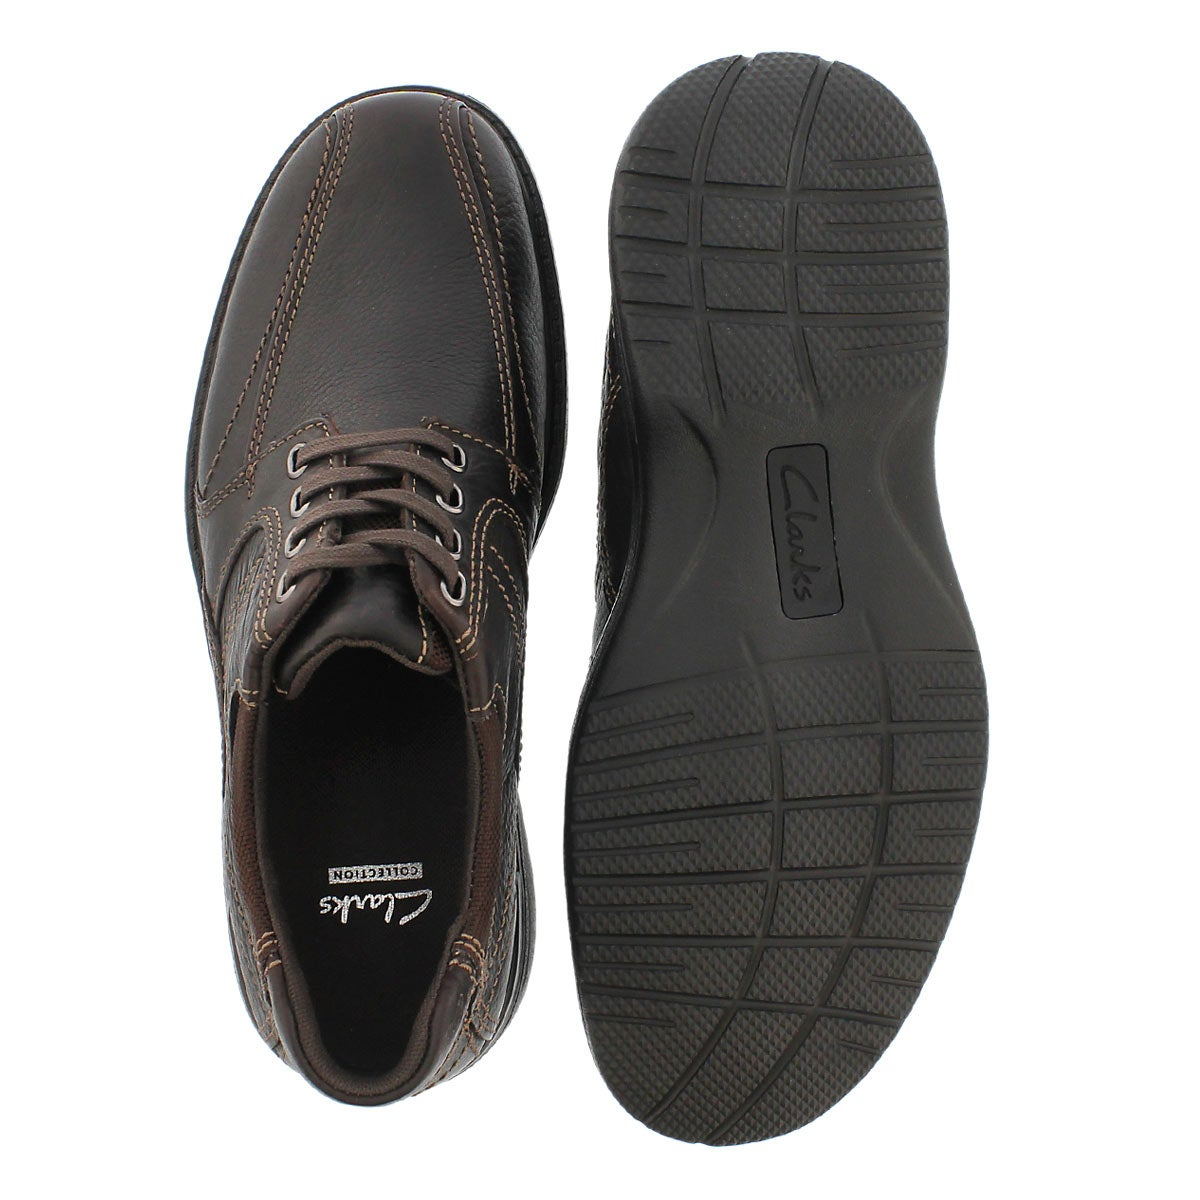 Mns Sherwin Limit brown leather oxford